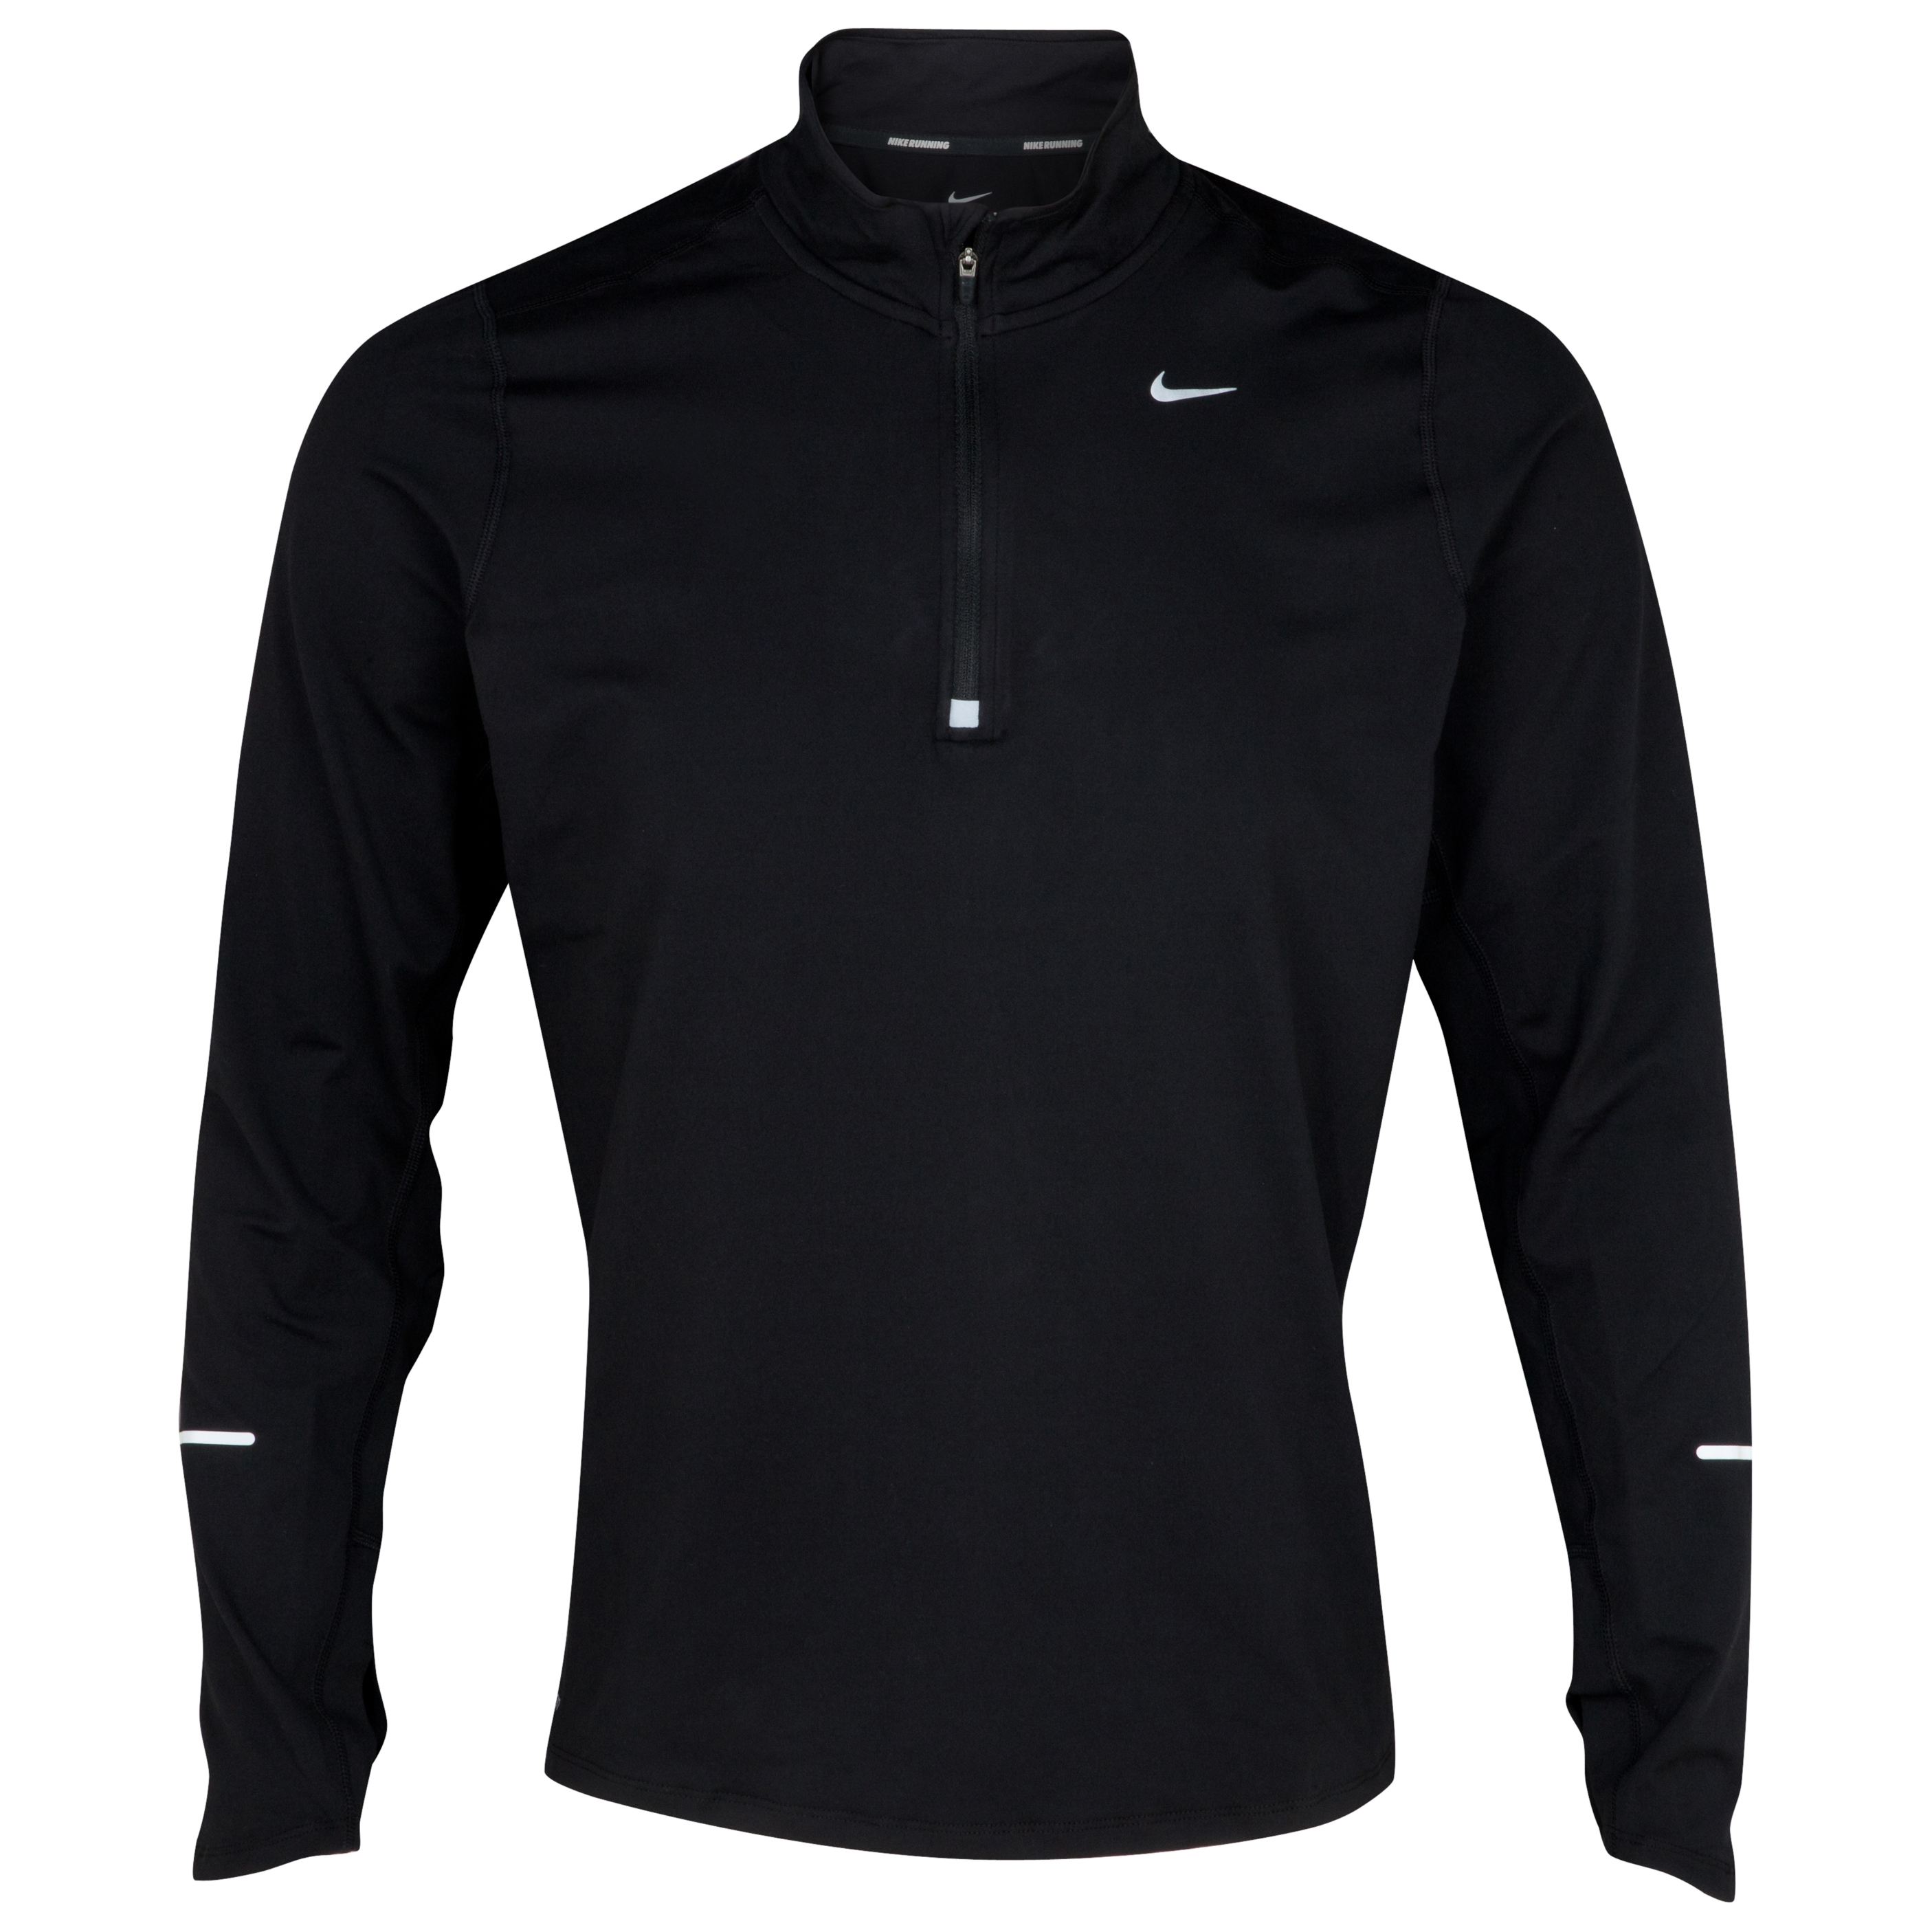 Nike Element 1/2 Zip Top - Black/Reflective Silver